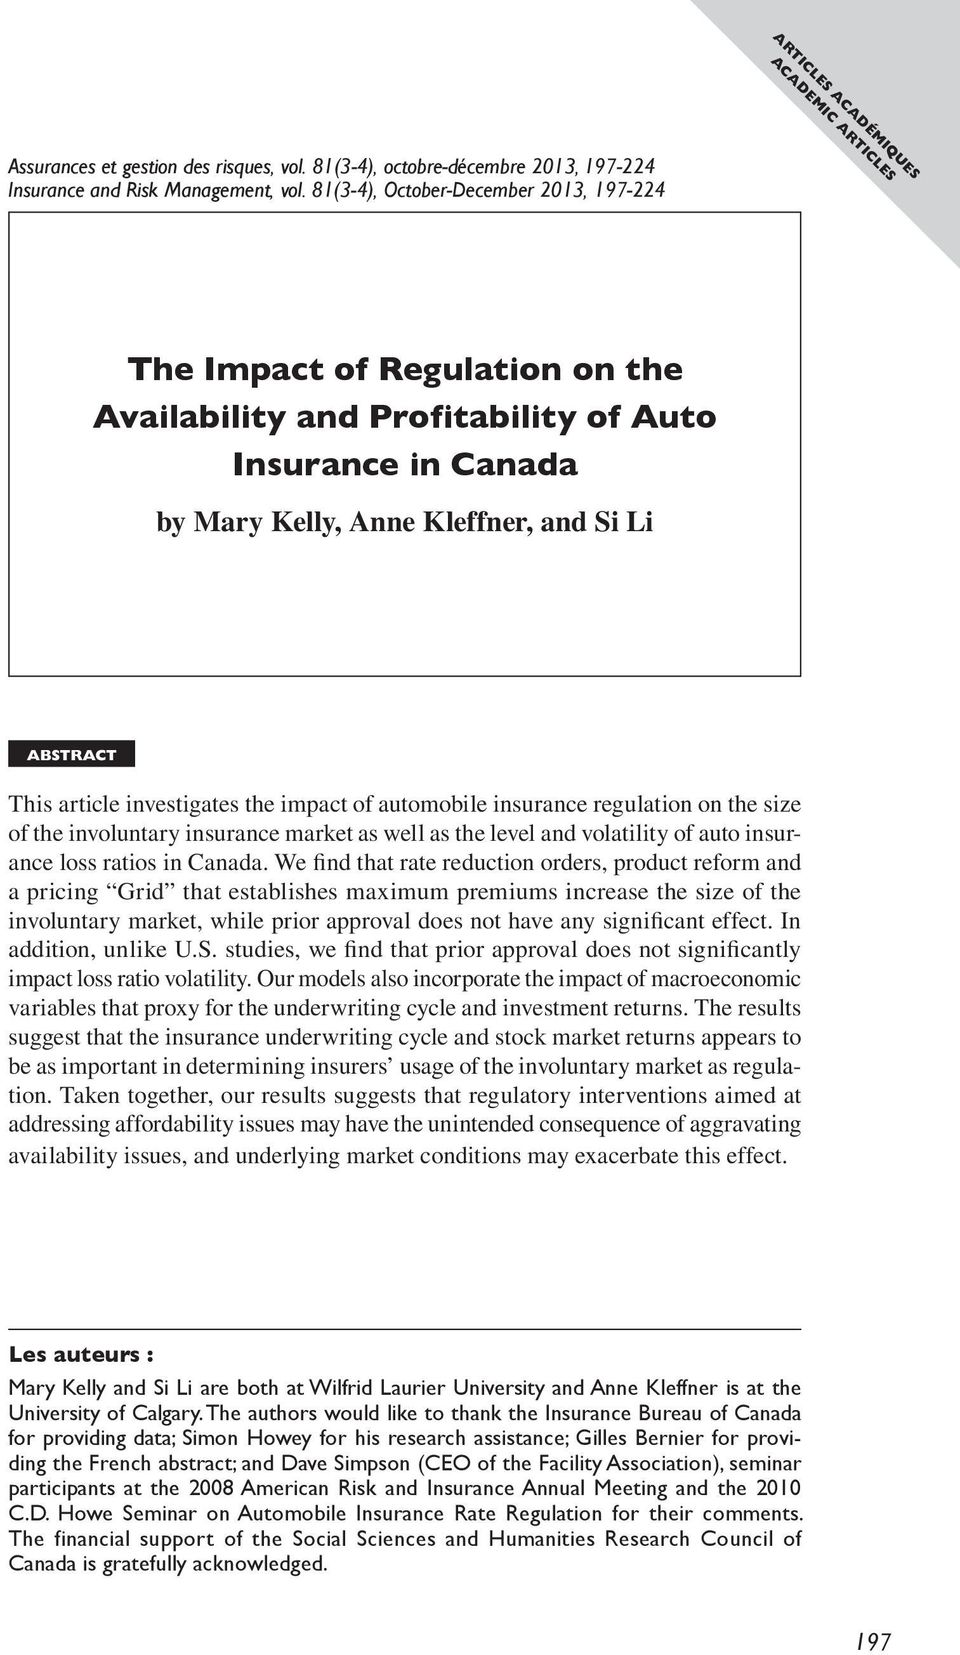 investigates the impact of automobile insurance regulation on the size of the involuntary insurance market as well as the level and volatility of auto insurance loss ratios in Canada.